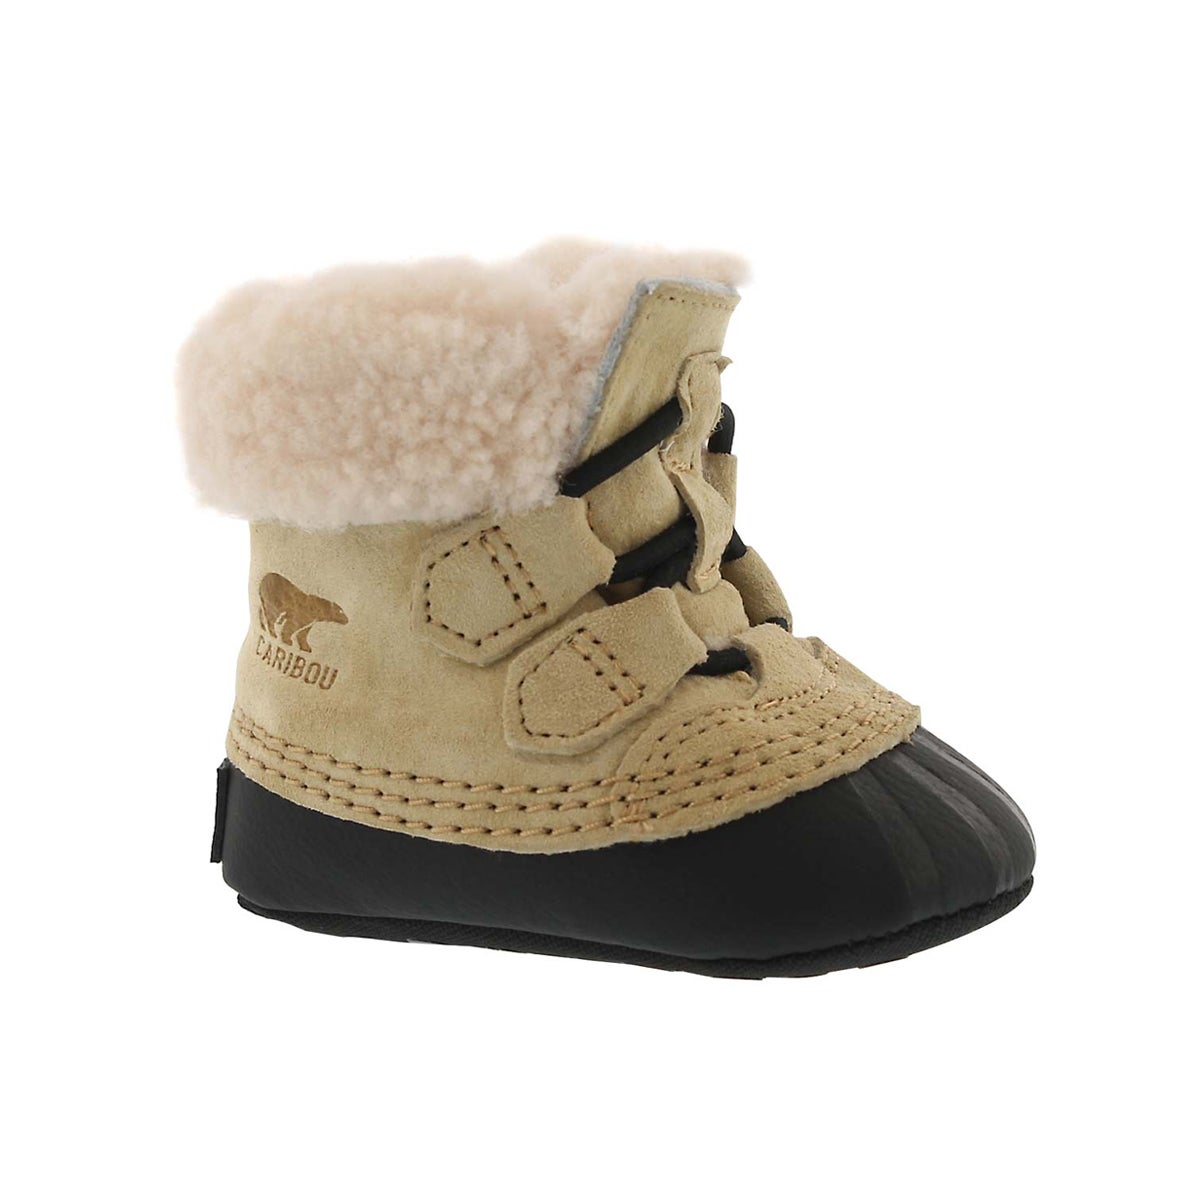 Infants' CARIBOOTIE curry/black boot slippers